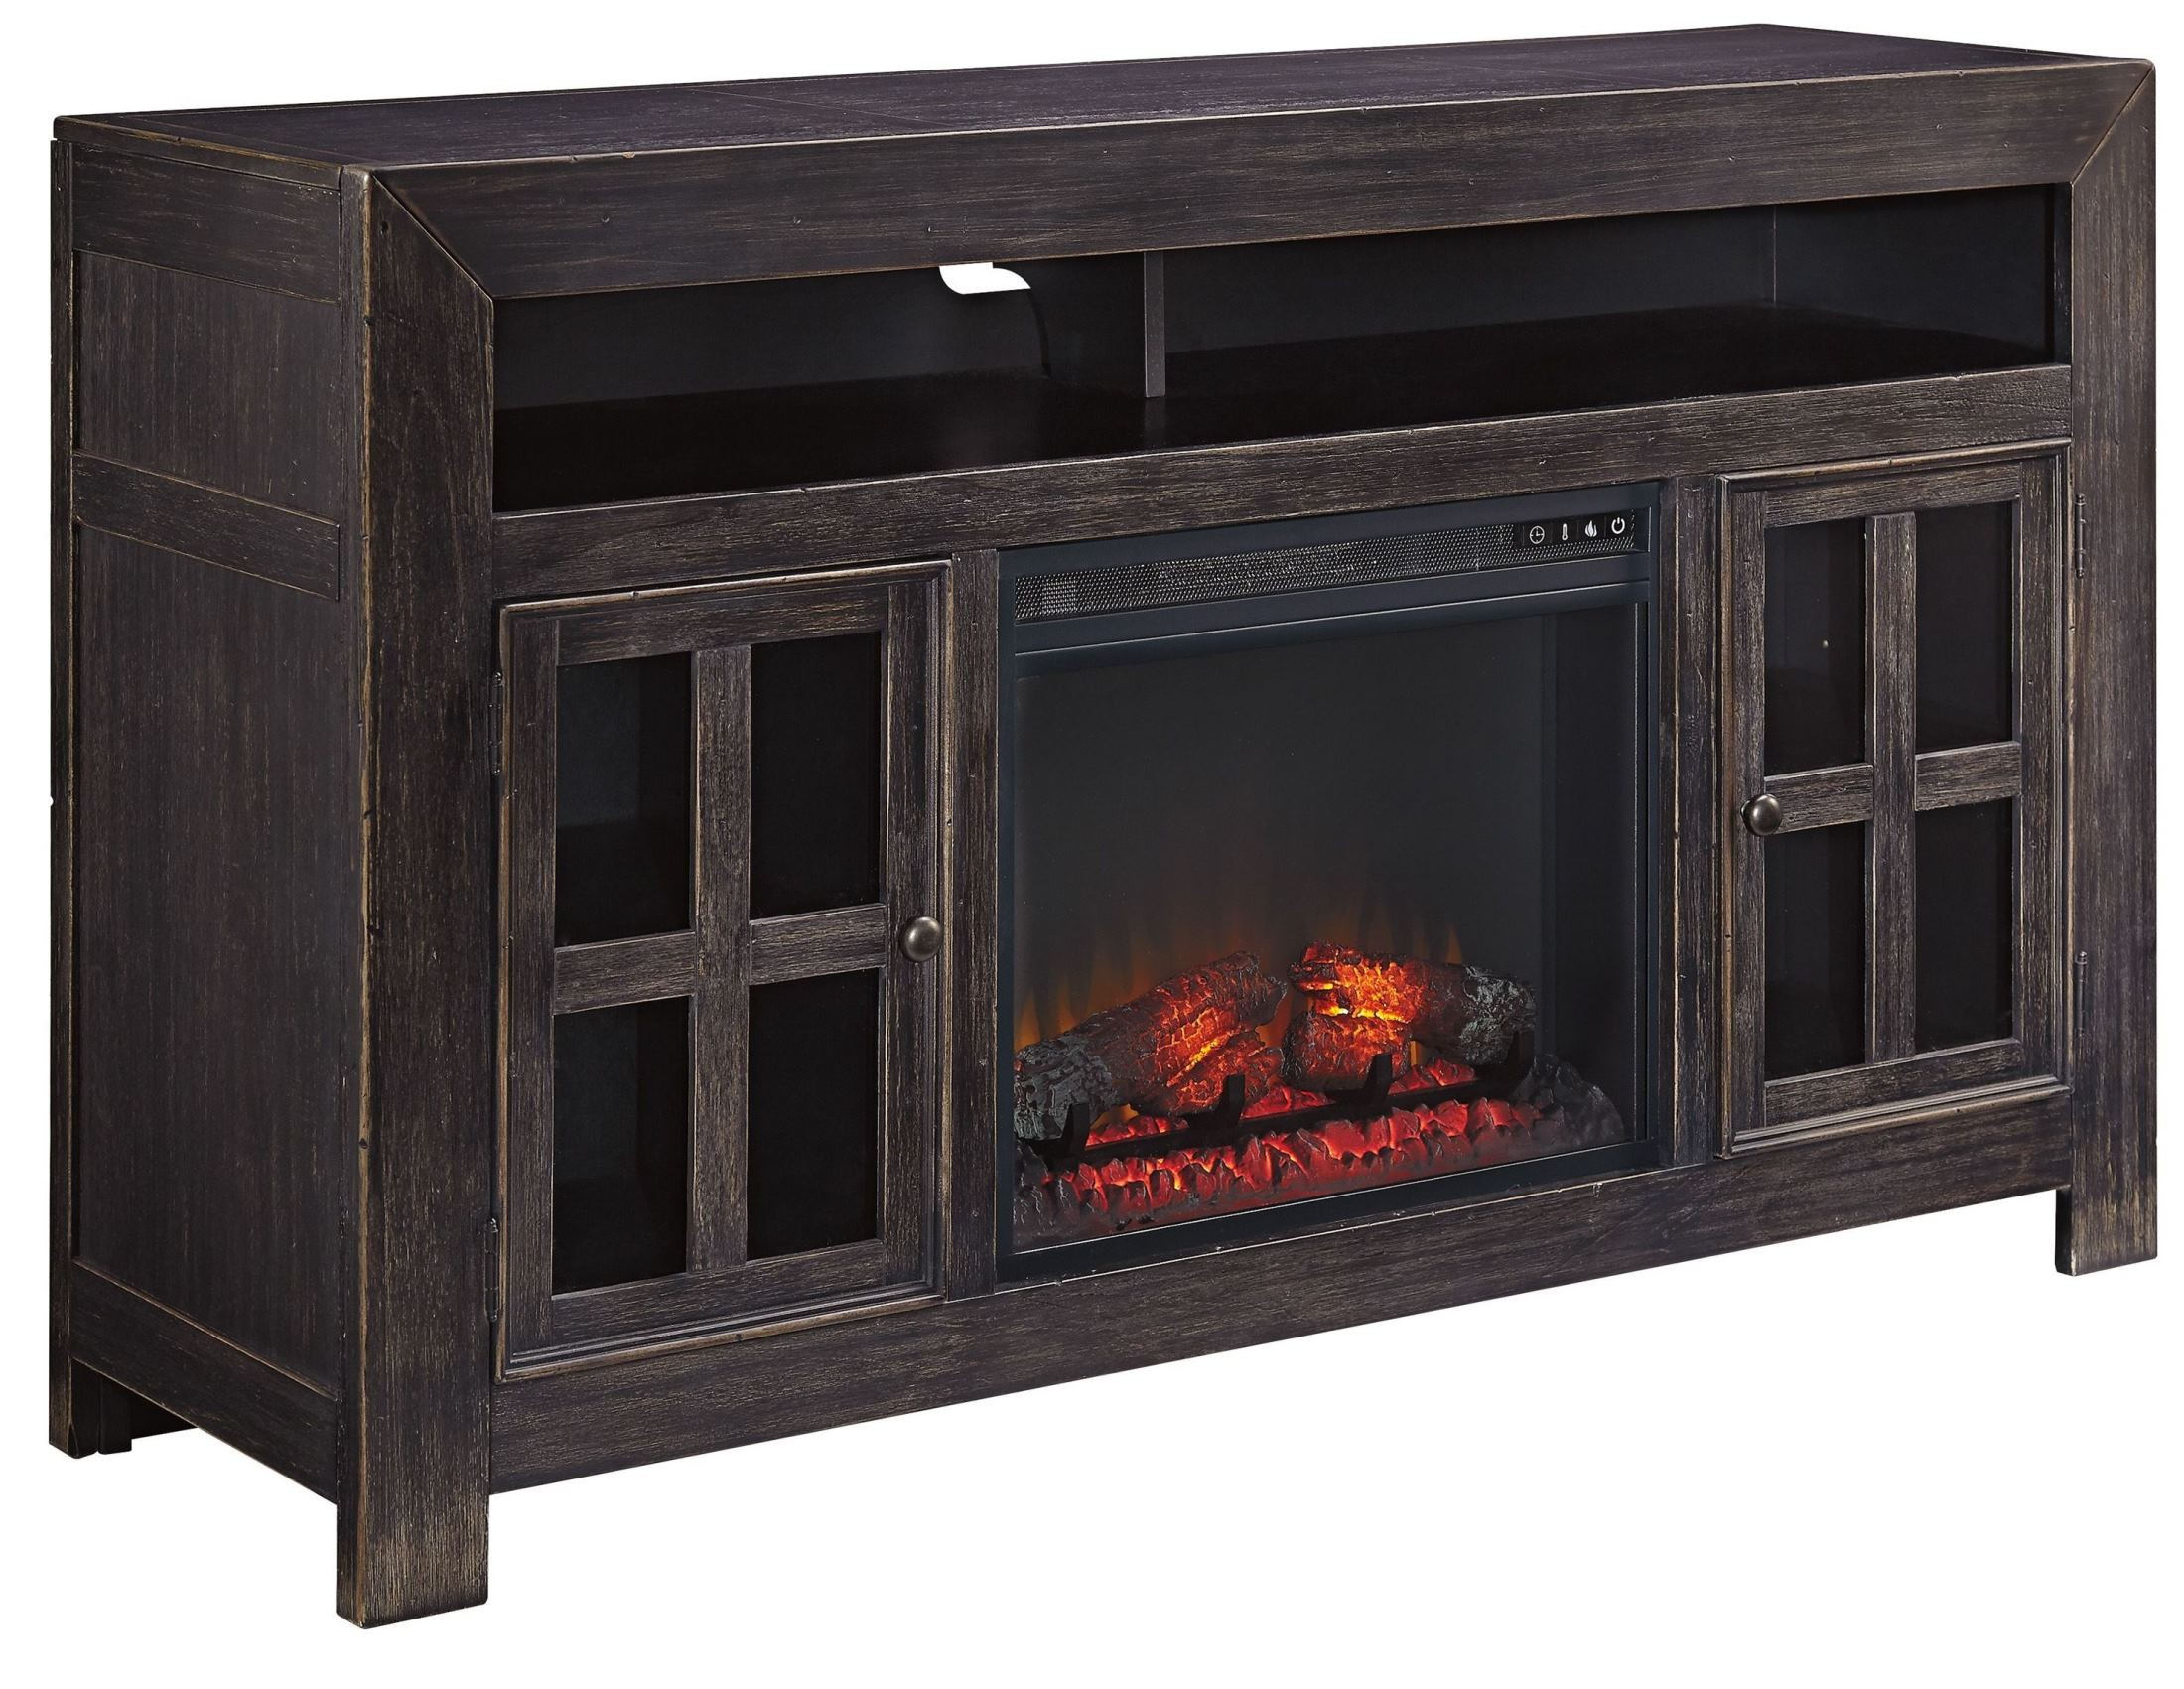 Gavelston Lg Tv Stand With Fireplace Insert From Ashley